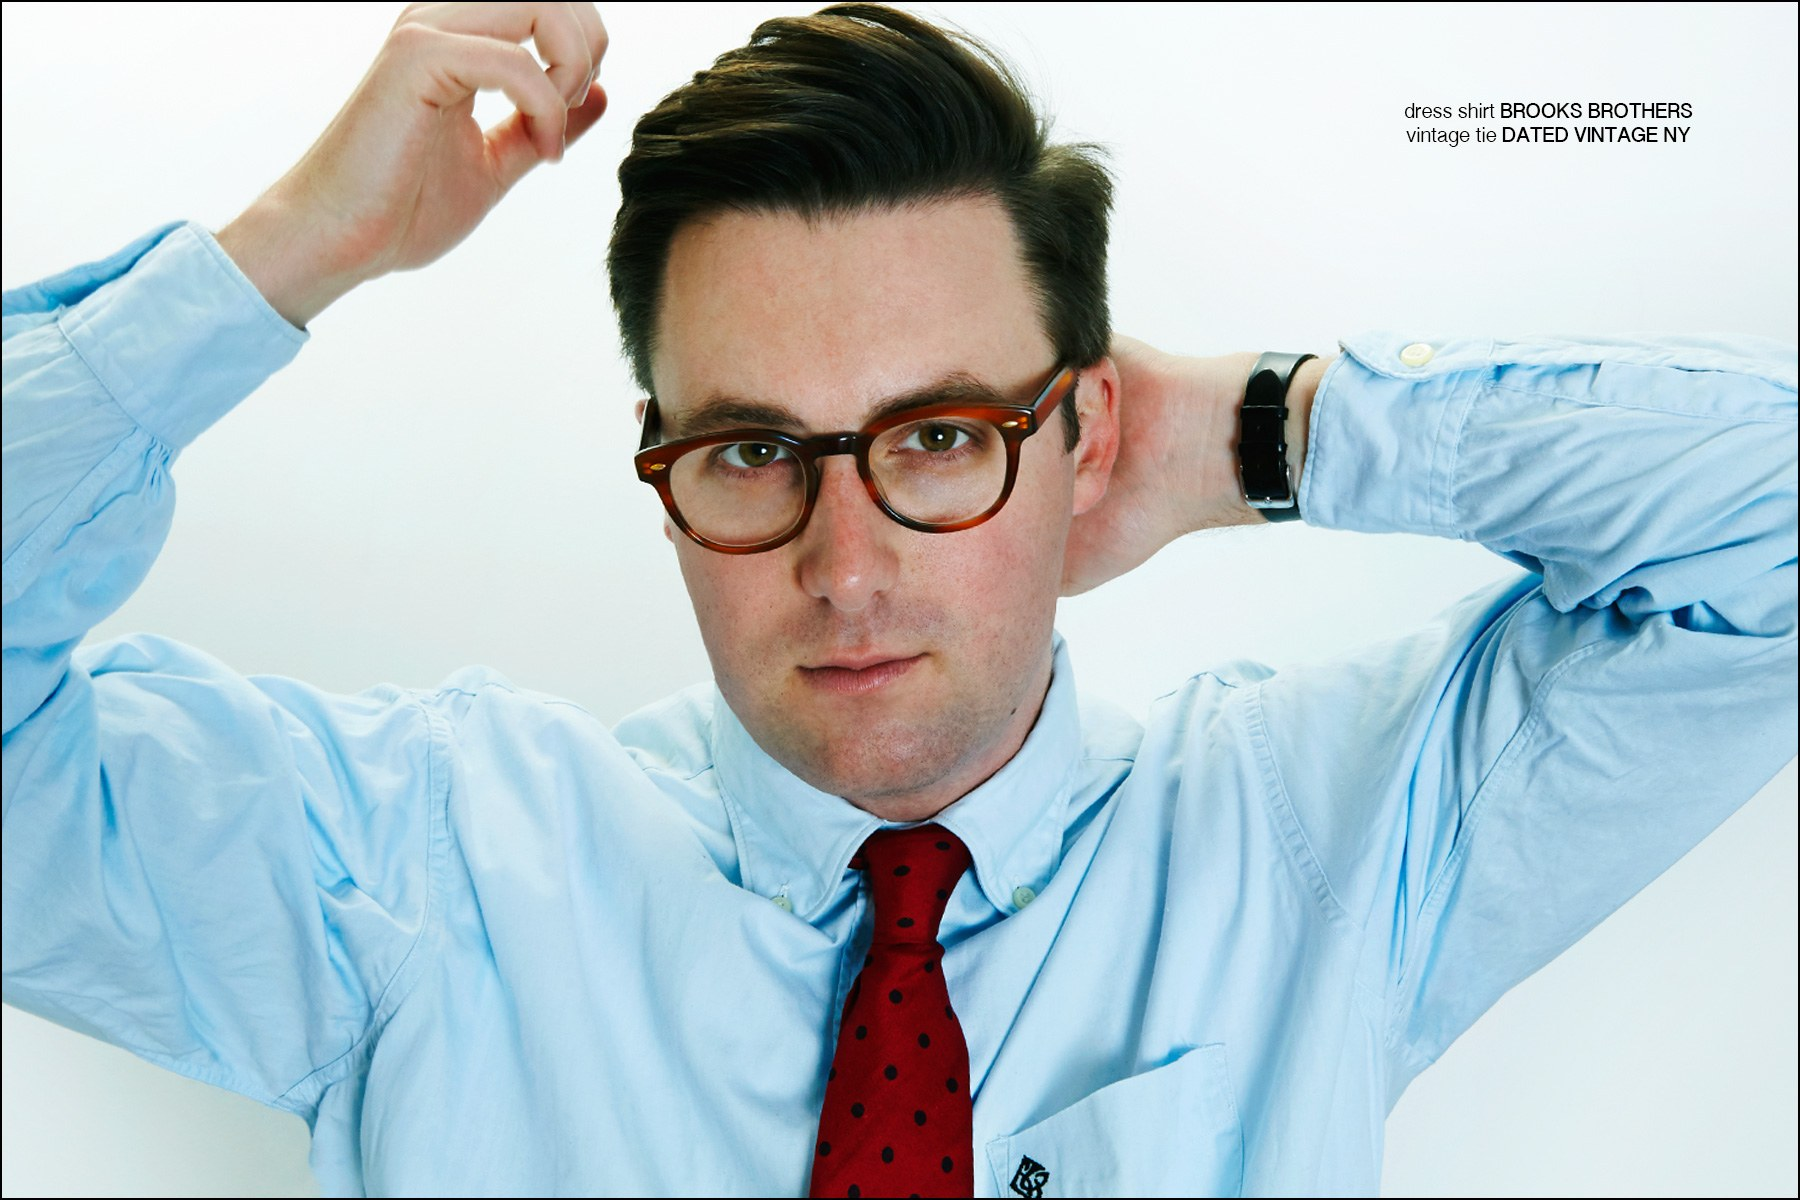 Musician Nick Waterhouse photographed in a Brooks Brothers dress shirt for Ponyboy magazine in New York City. Photography by Alexander Thompson.